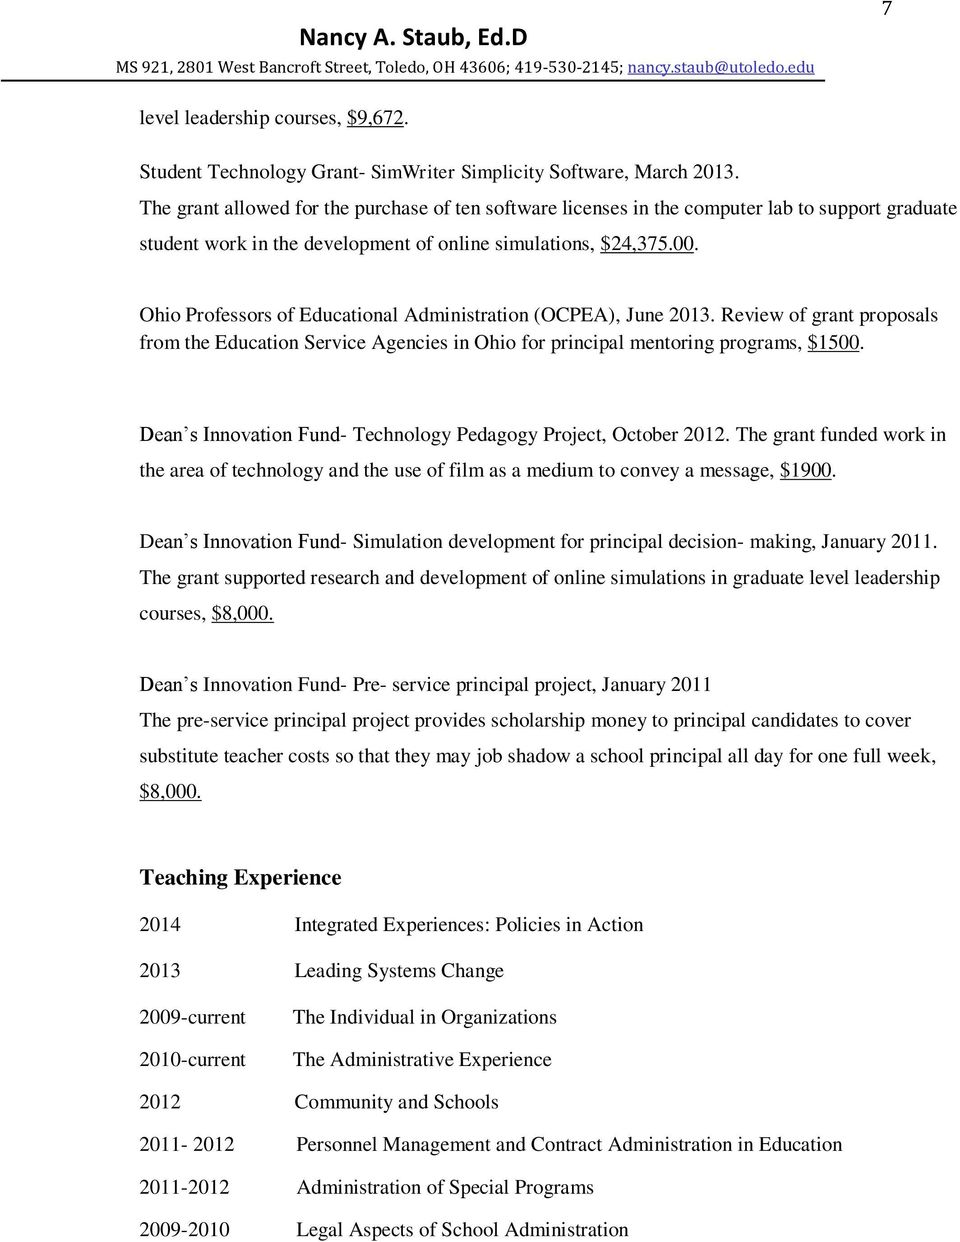 Ohio Professors of Educational Administration (OCPEA), June 2013. Review of grant proposals from the Education Service Agencies in Ohio for principal mentoring programs, $1500.